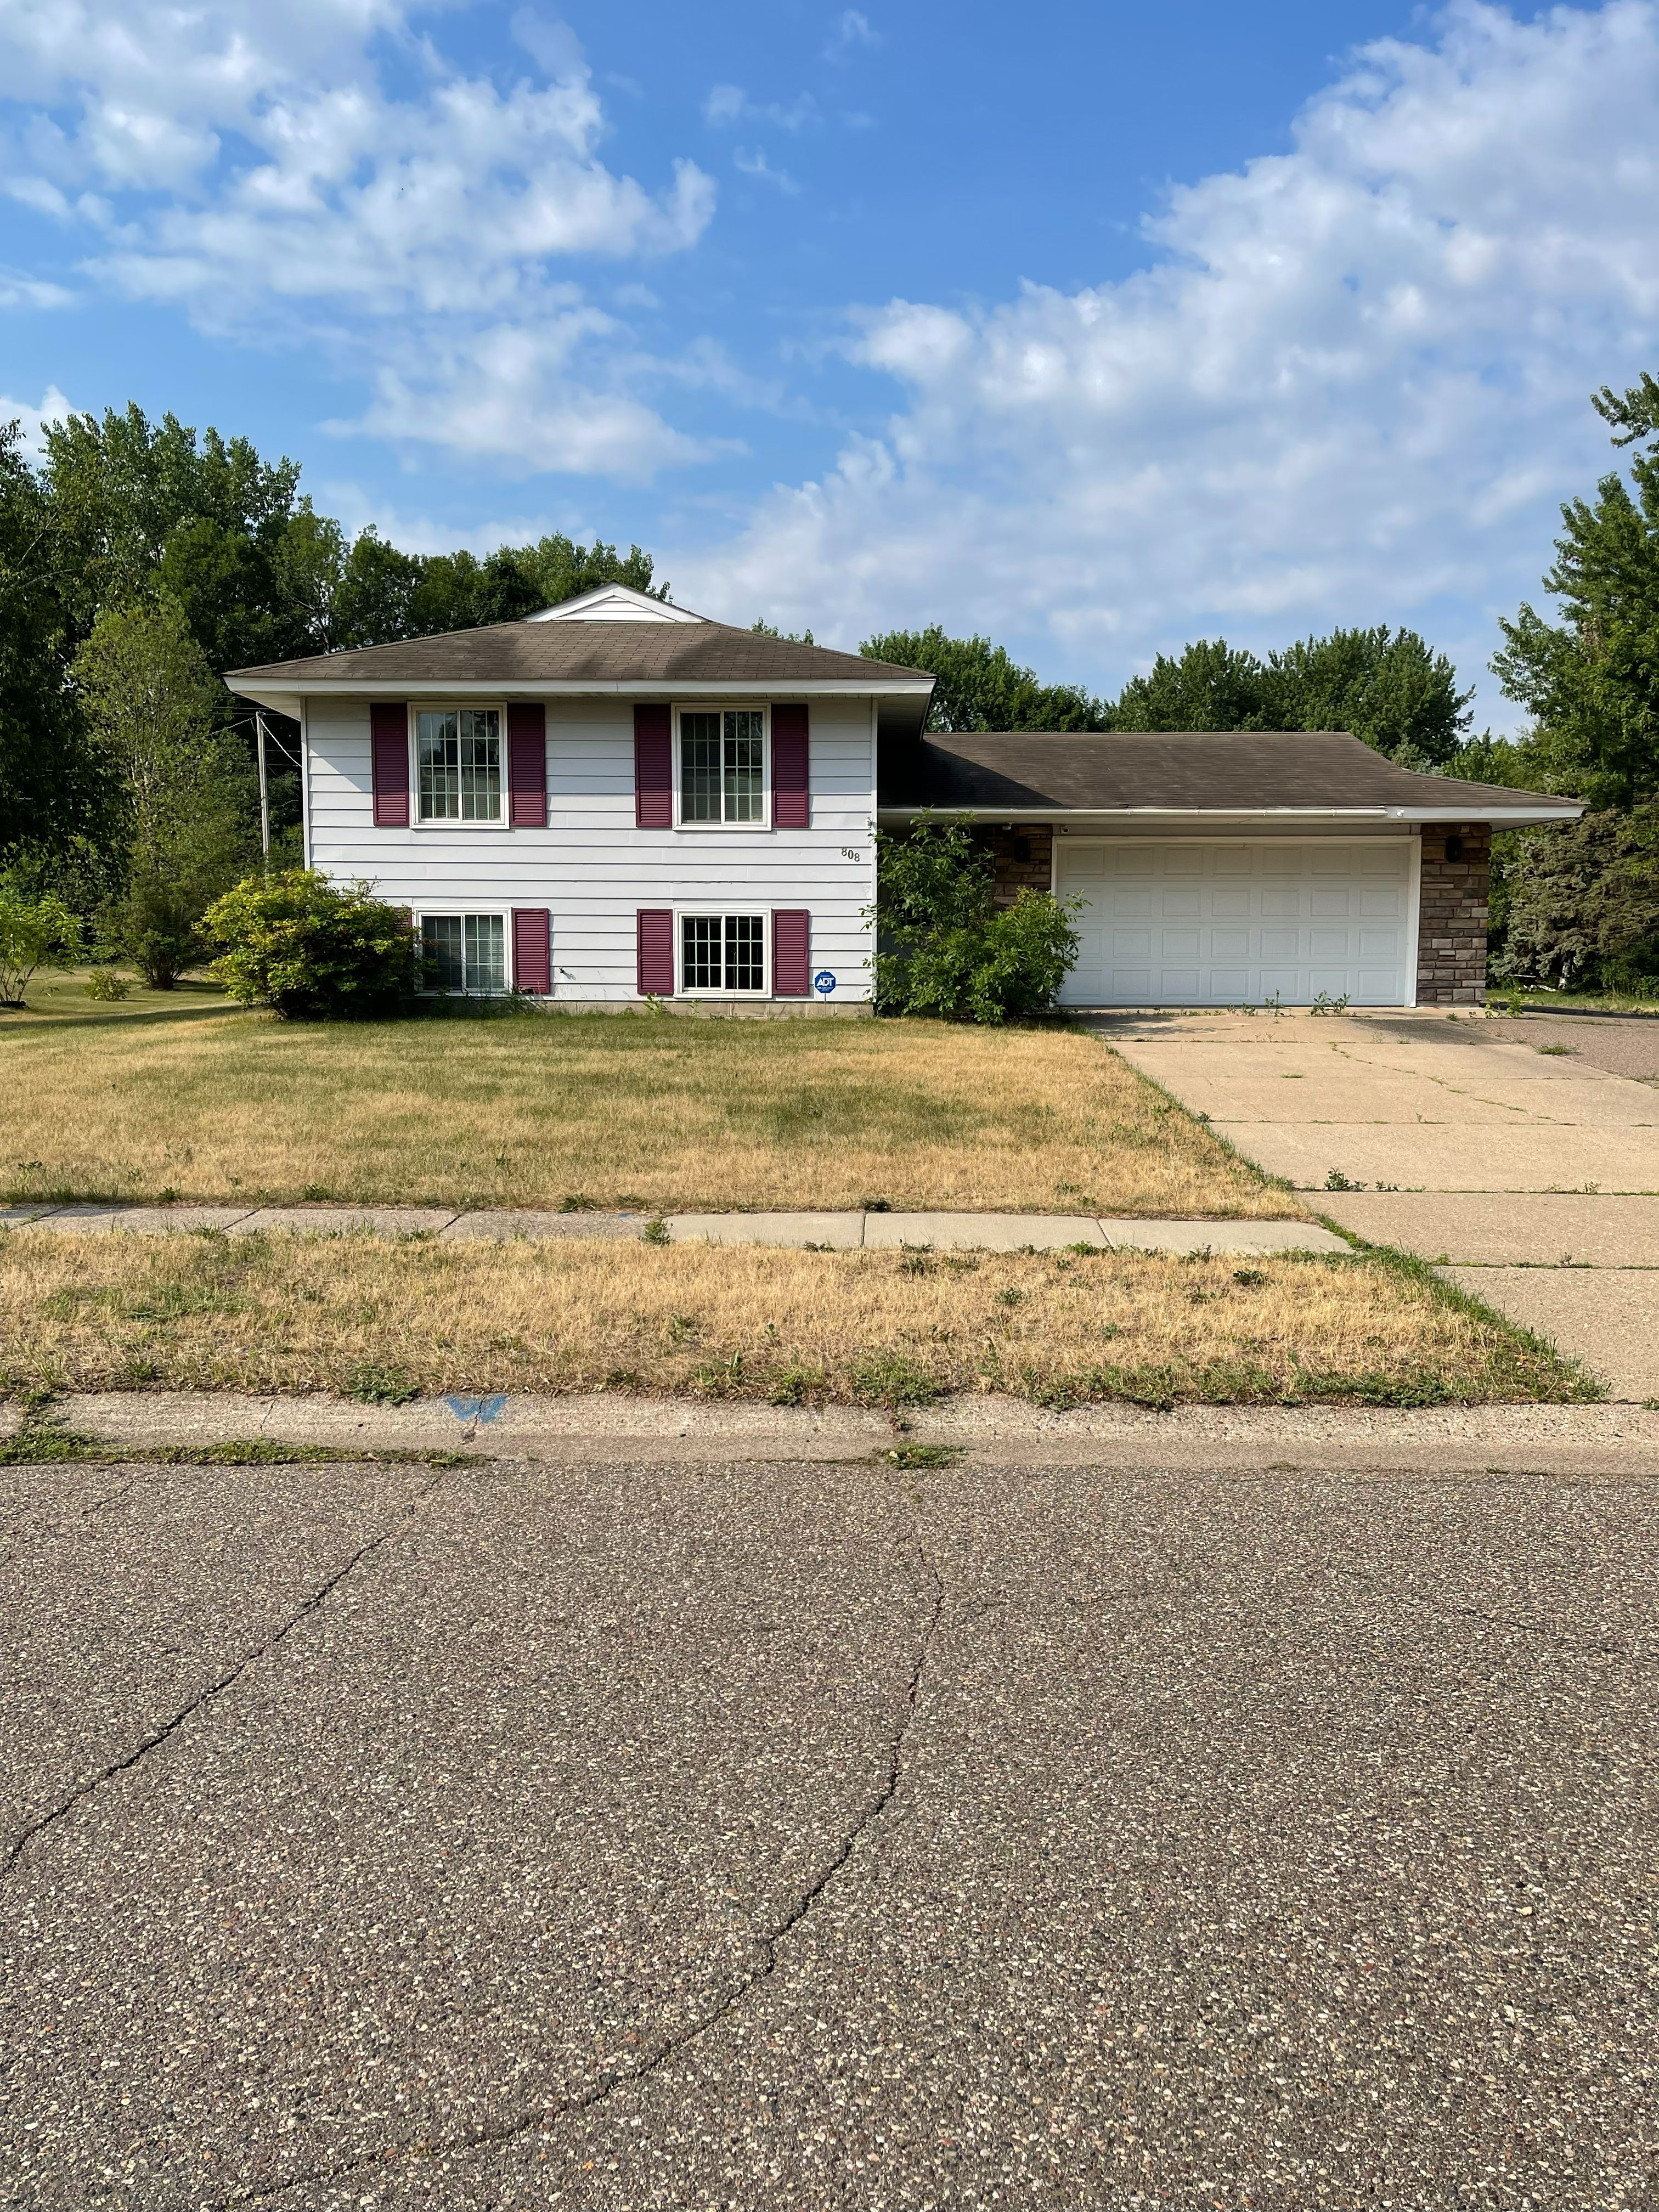 808 Newell Dr, Apple Valley, MN